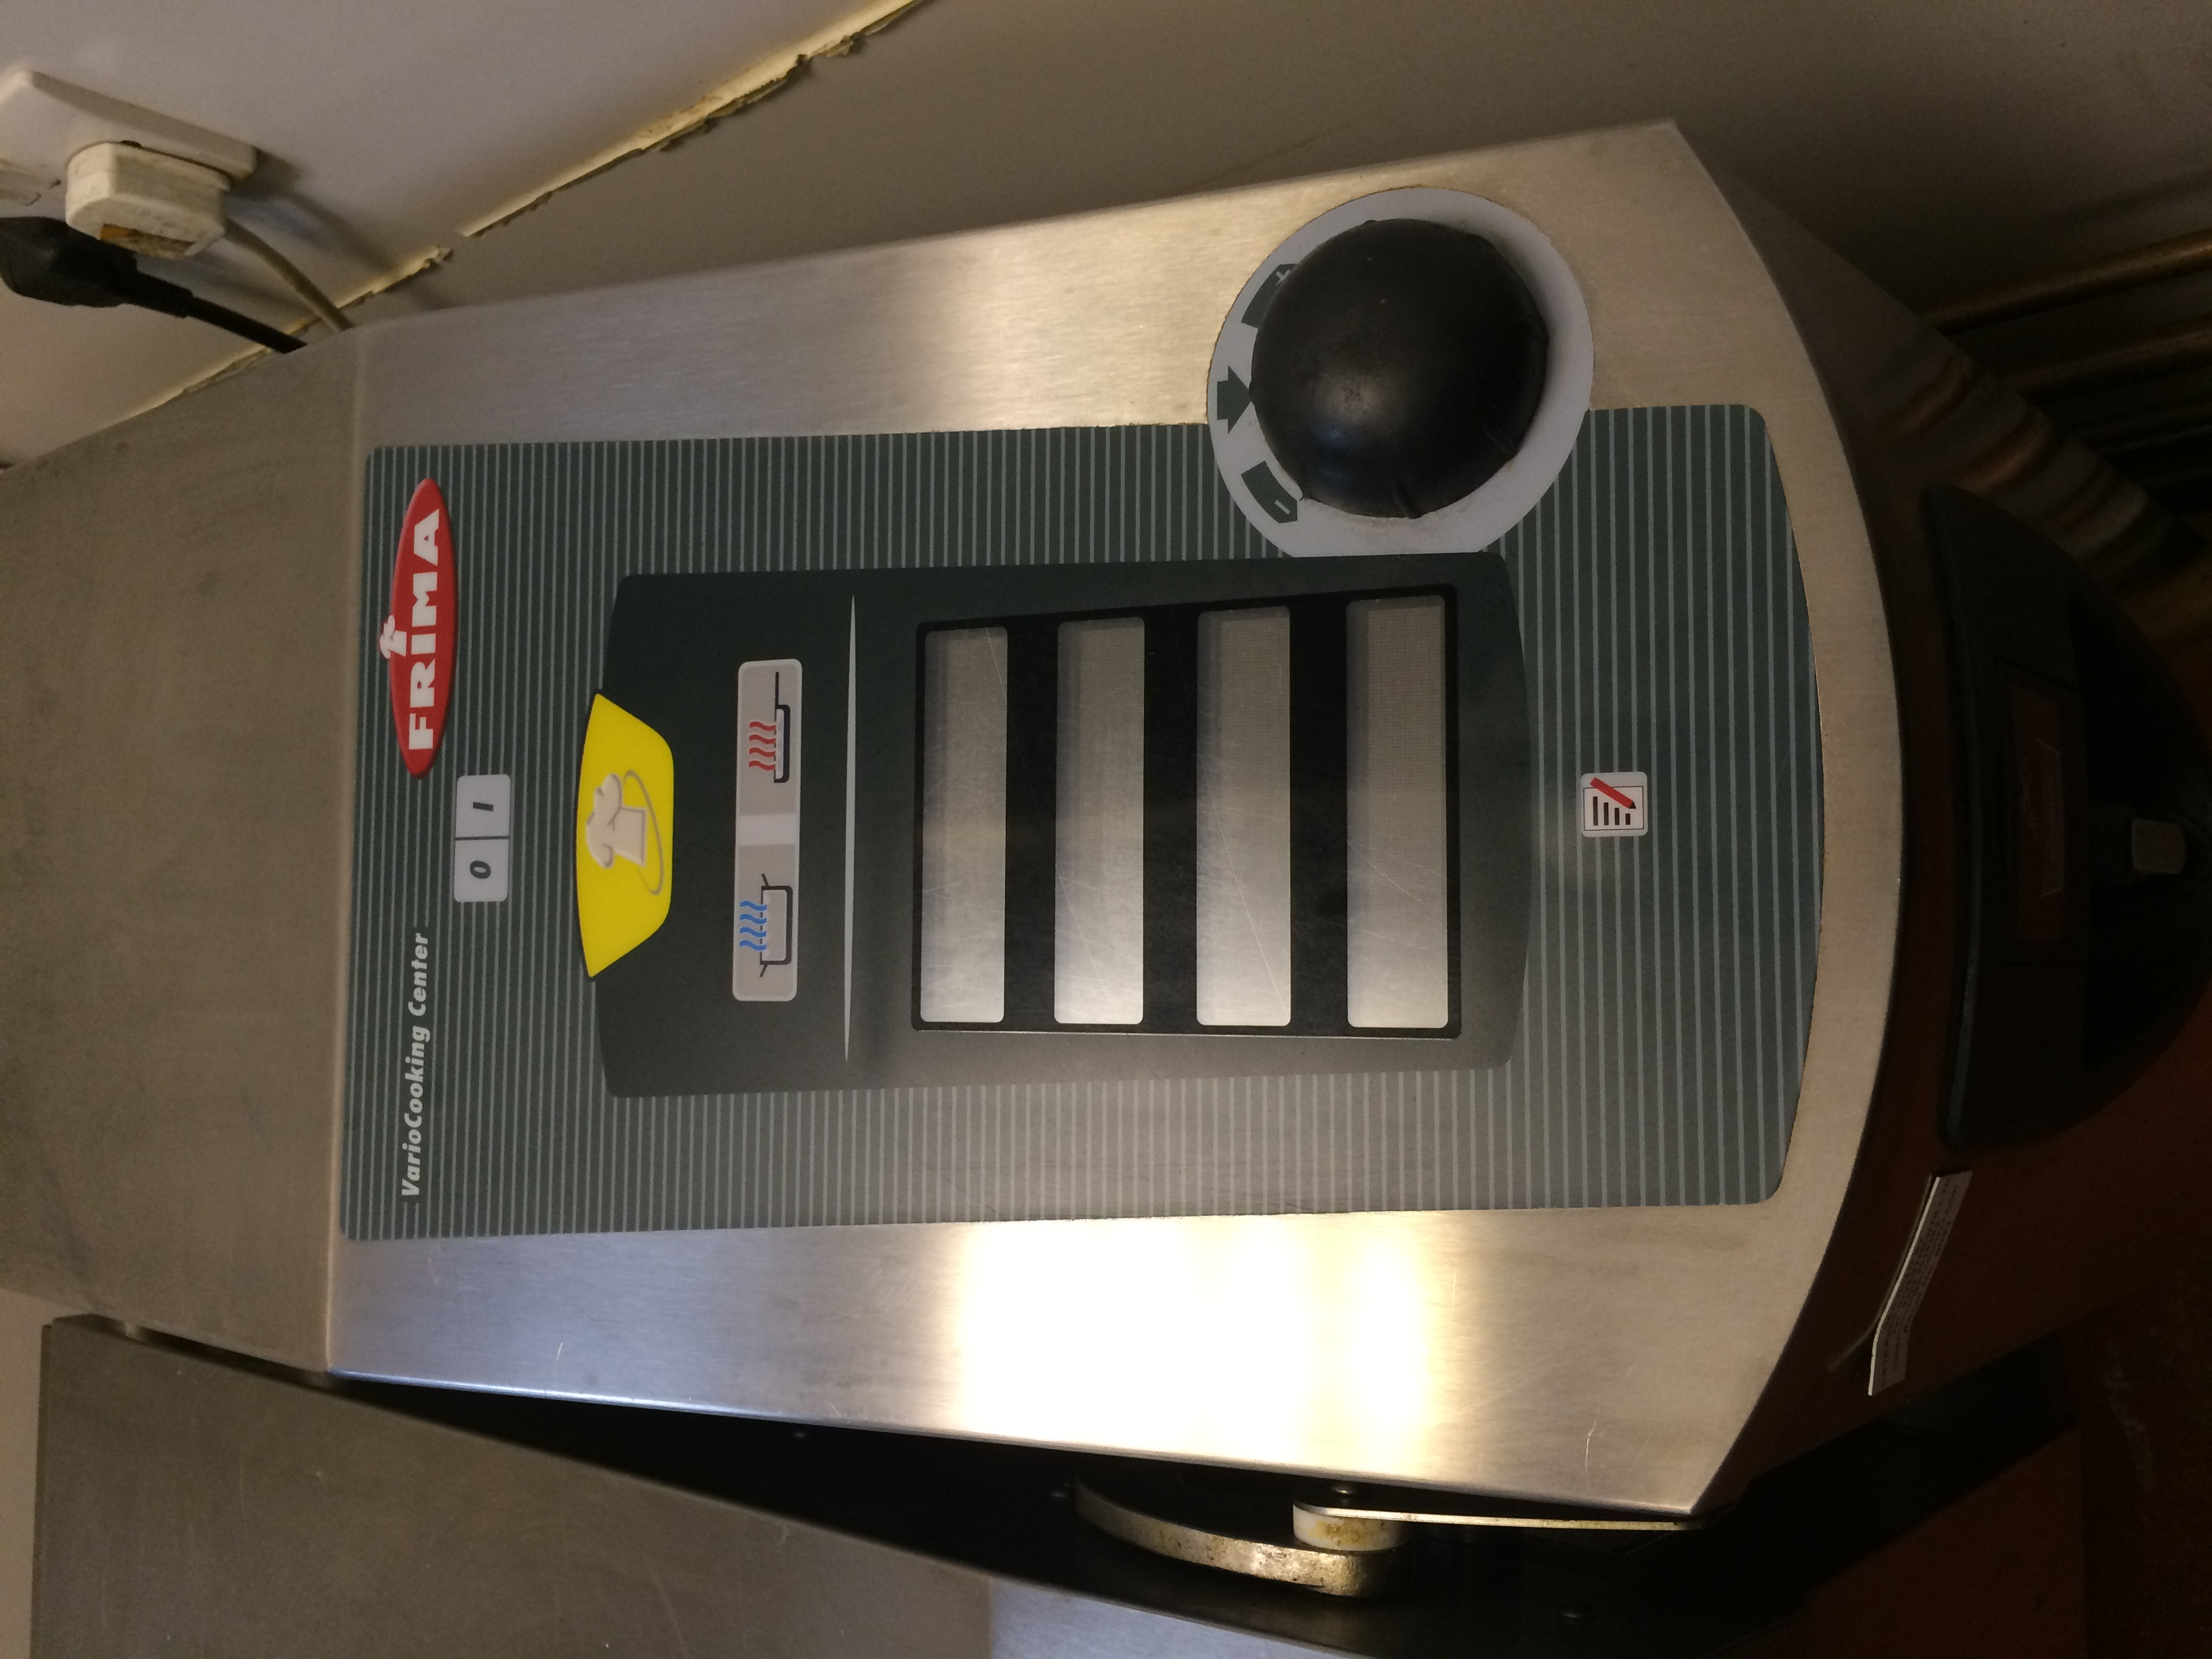 Lot 45 - Frima VCC211+ Vario Cooking Centre boiling, frying, deep frying